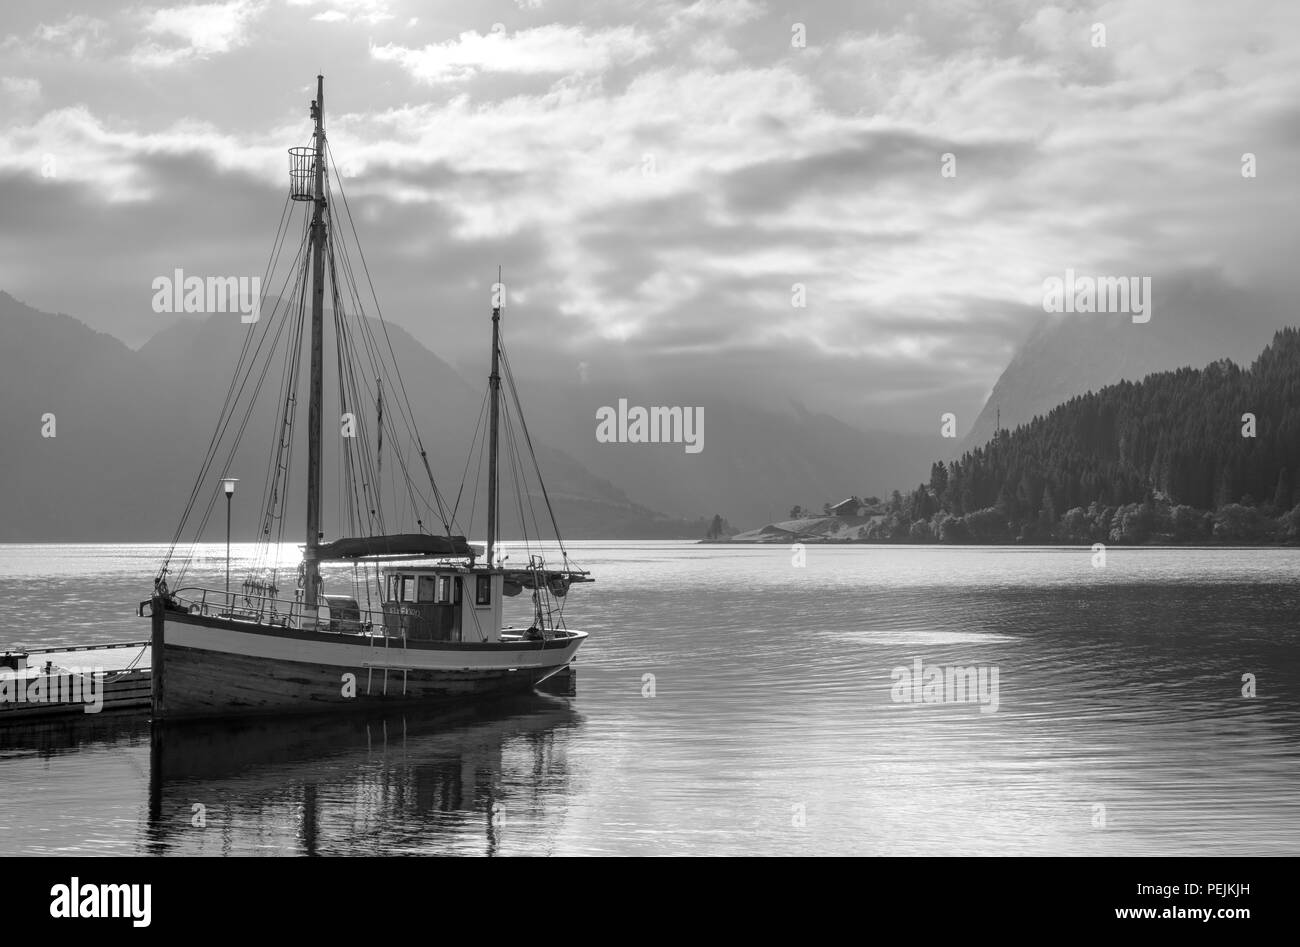 Norway fjords. Boat moored at a jetty outside the Sagafjord Hotel in the early morning, Sæbø, Hjørundfjorden, Møre og Romsdal, Norway - Stock Image